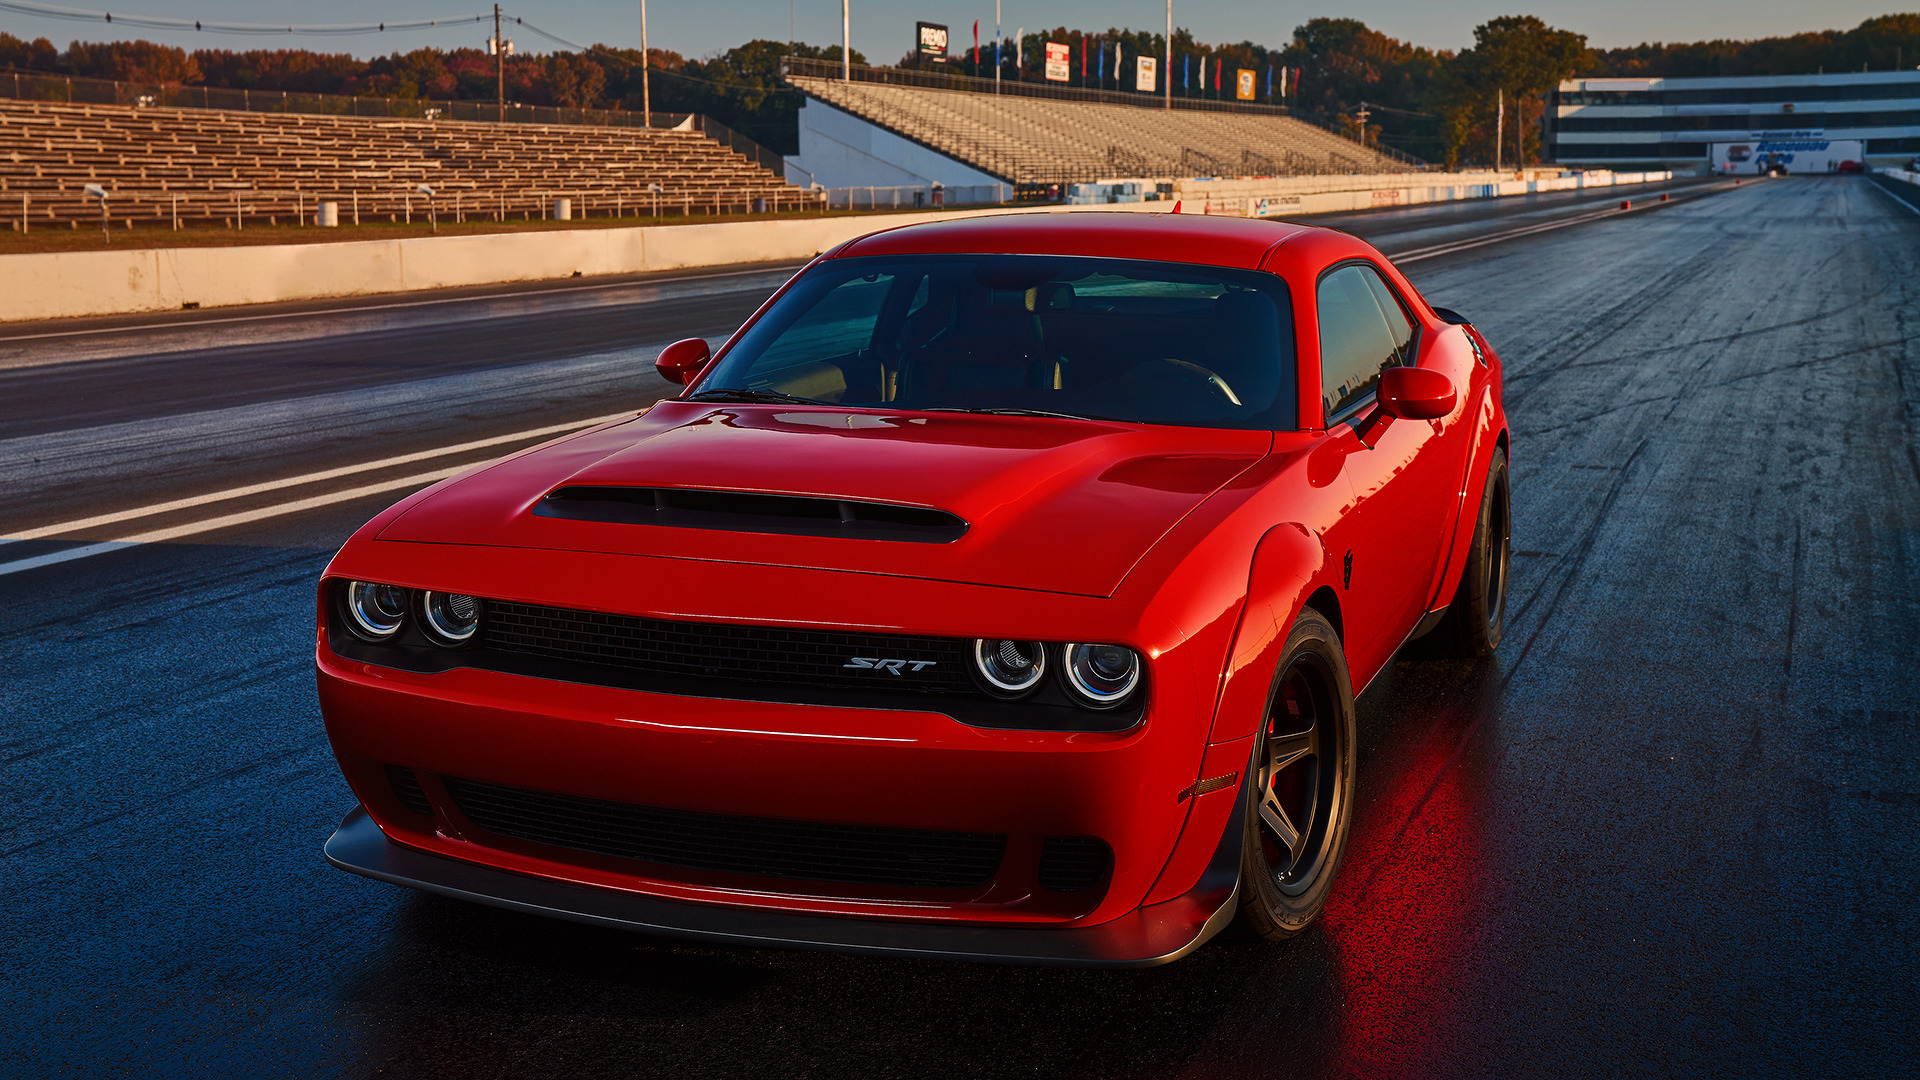 Владельцы Challenger SRT Demon подали в суд на Dodge